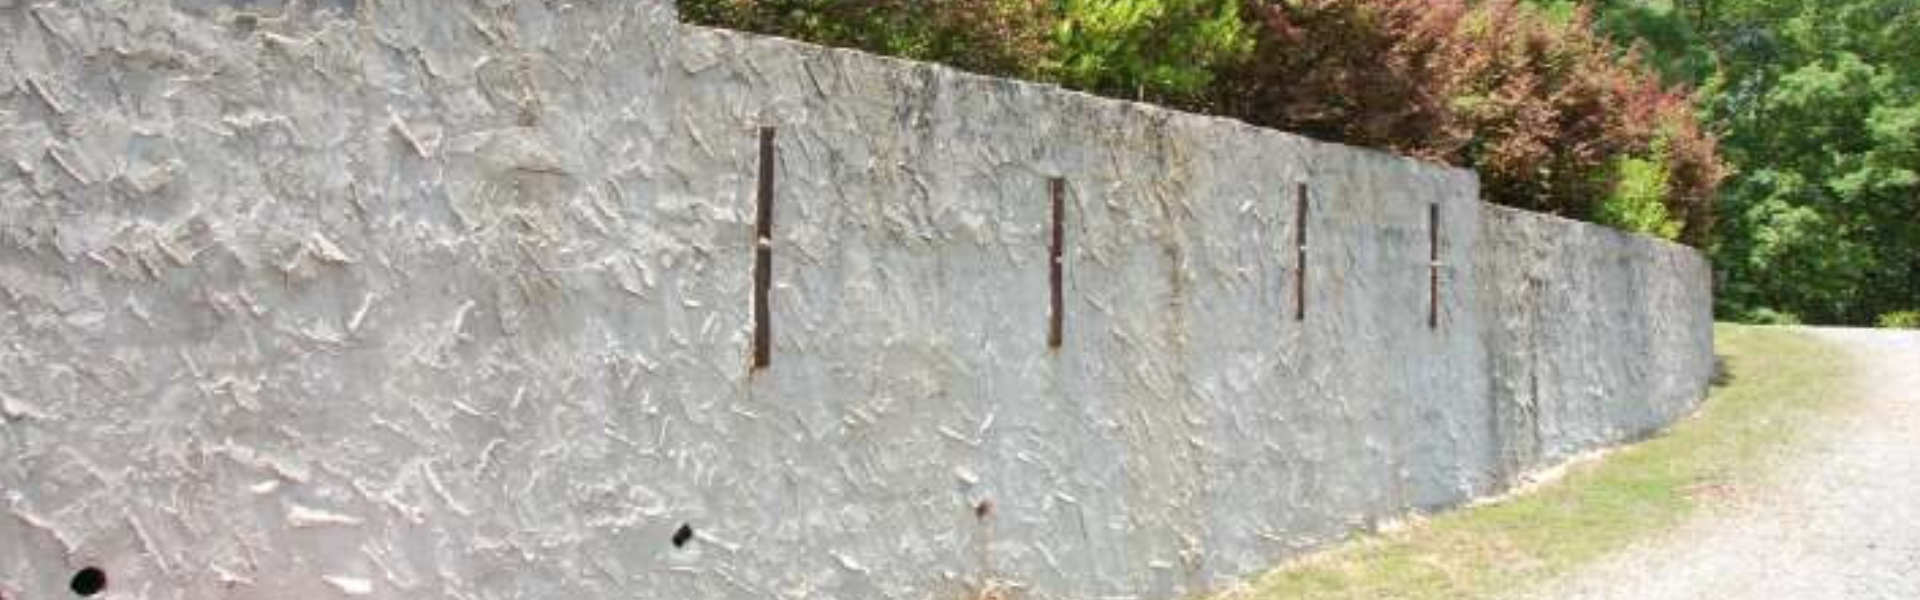 concrete wall with wall anchors